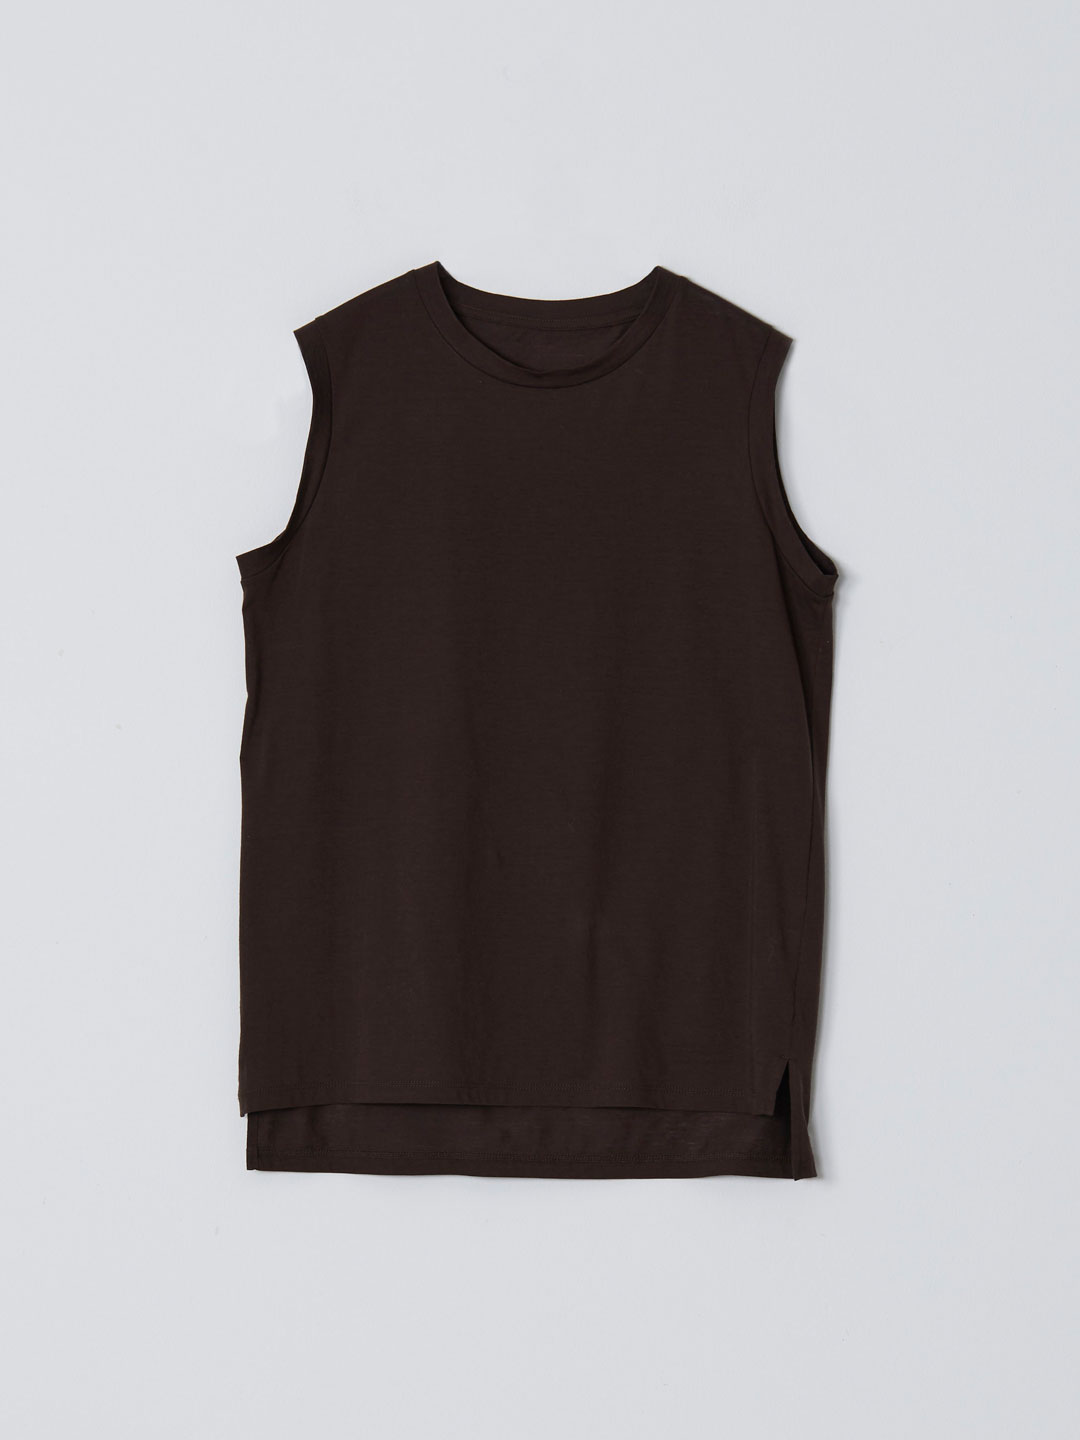 No 0236  High Gauge Cotton Sleeveless Tee - Dark Brown